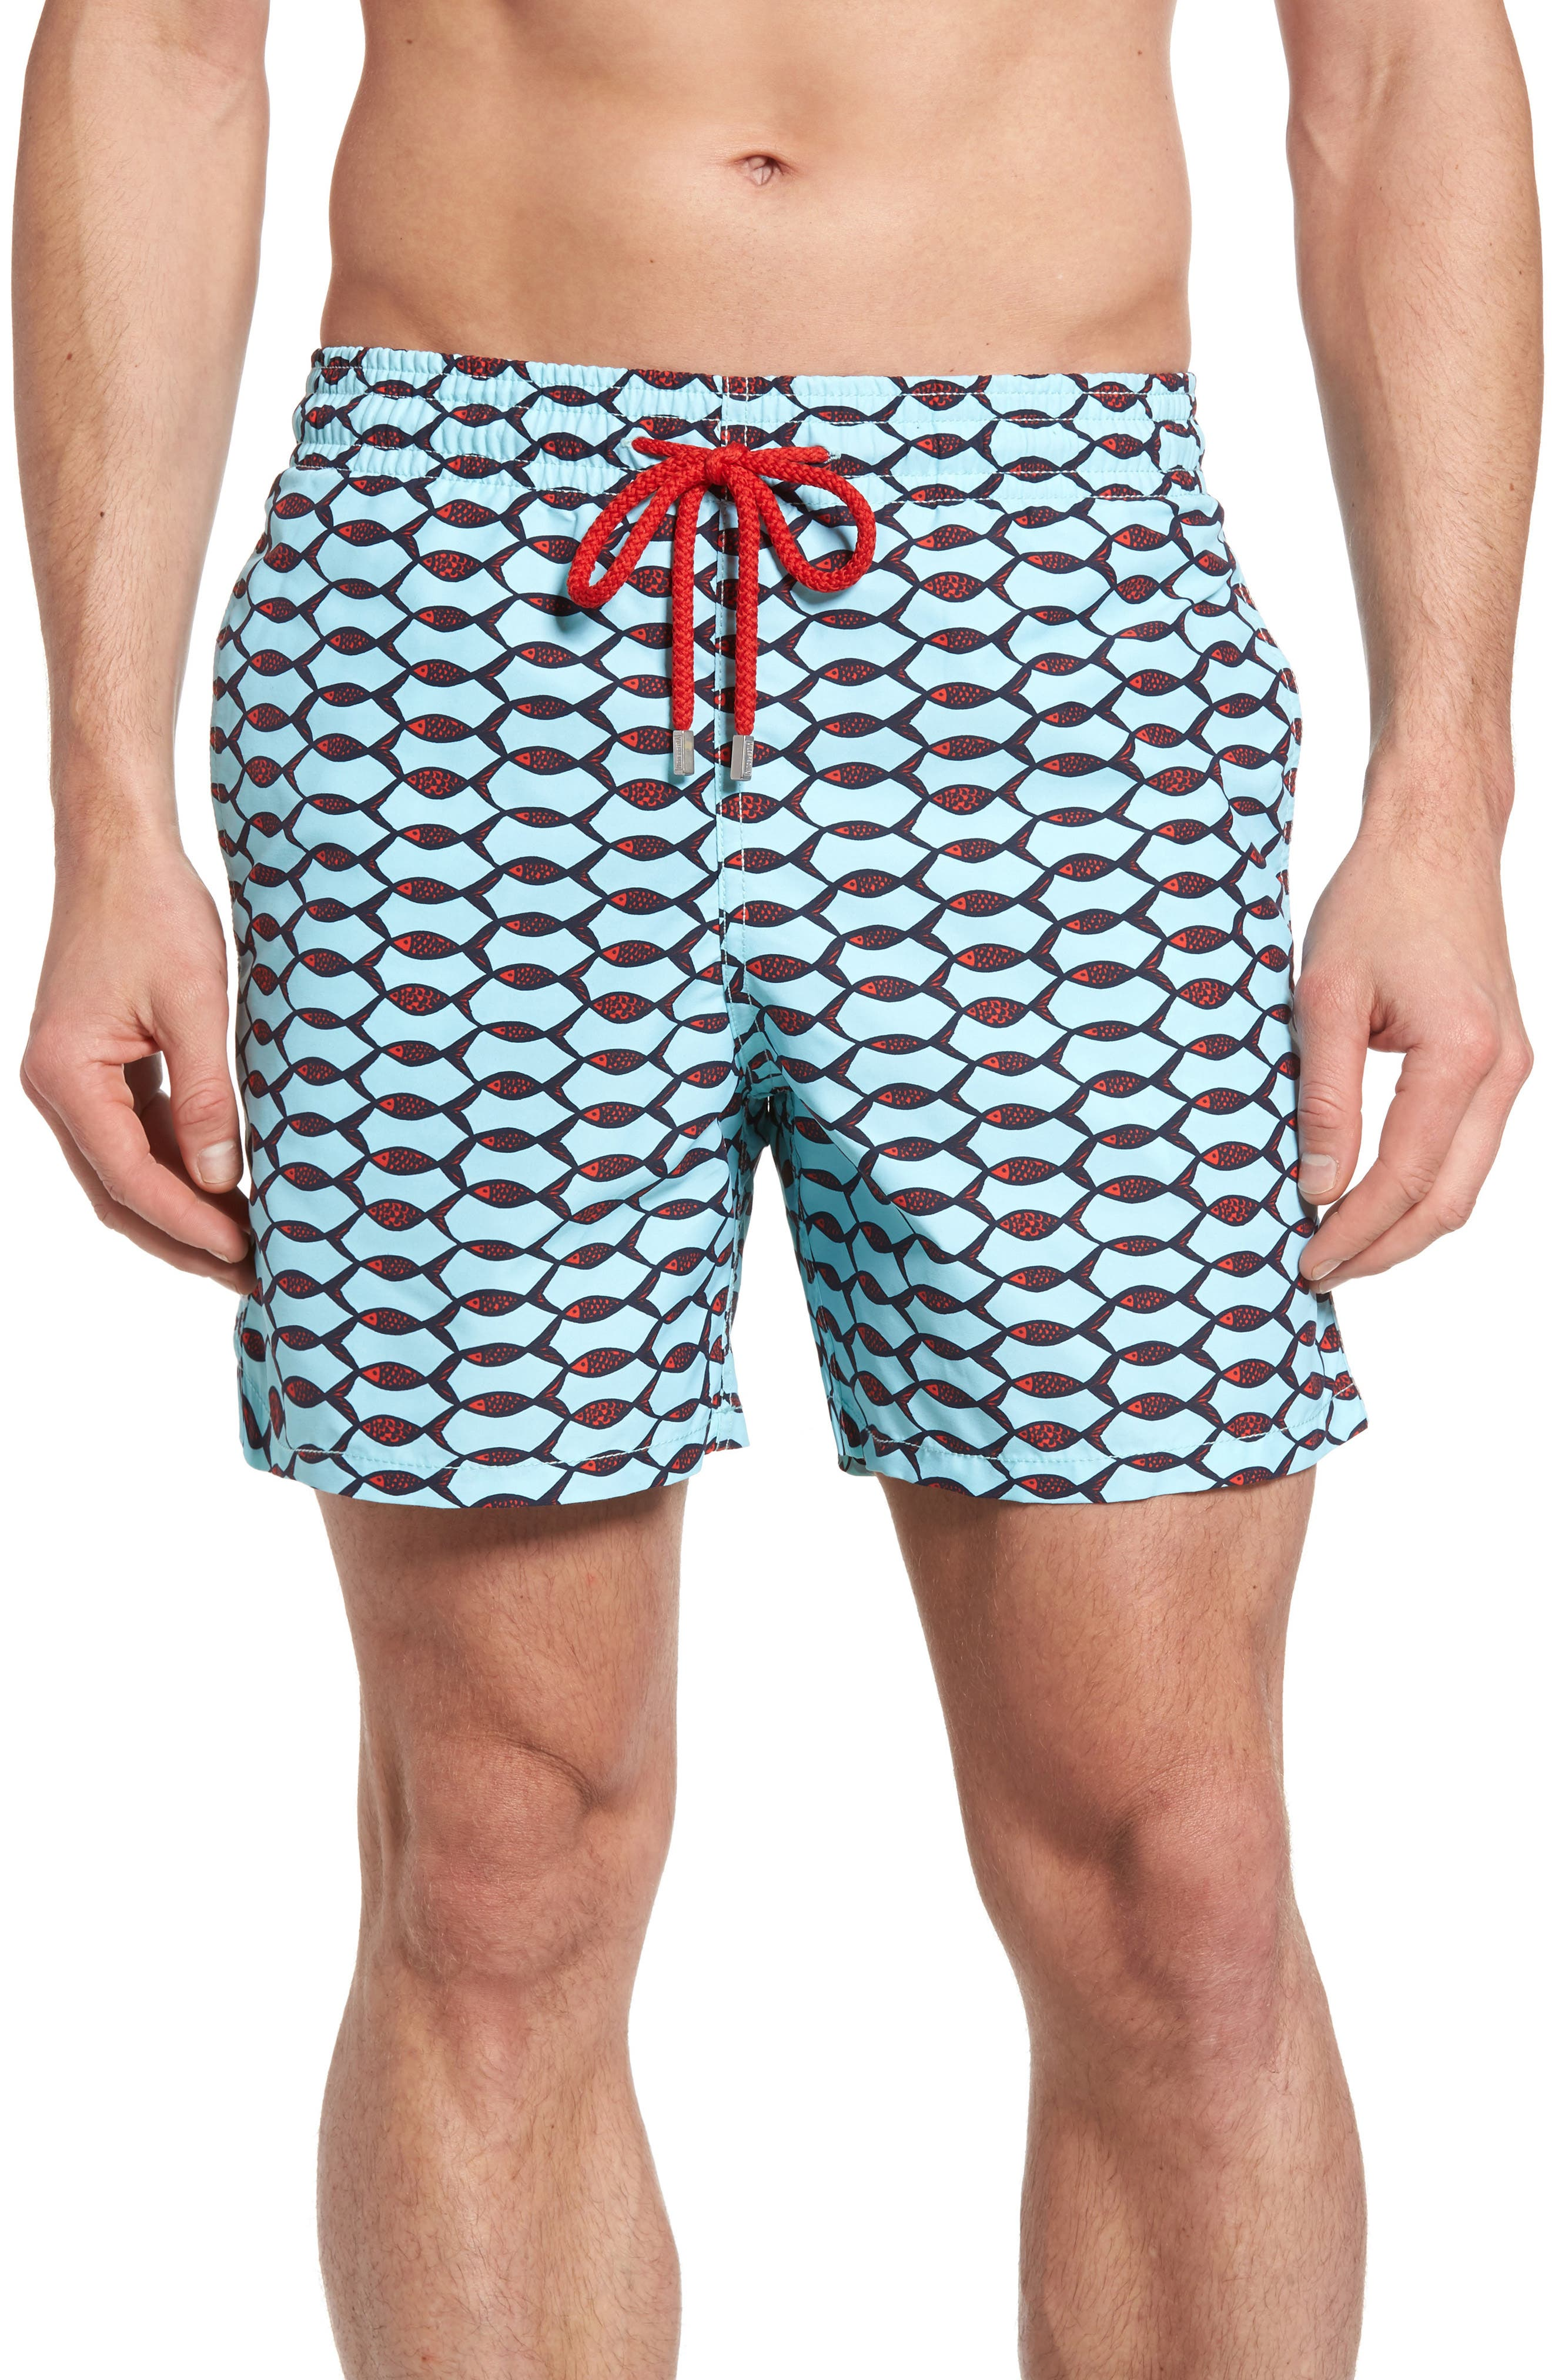 Moorea Fishnet Print Swim Trunks,                         Main,                         color, FROSTED BLUE